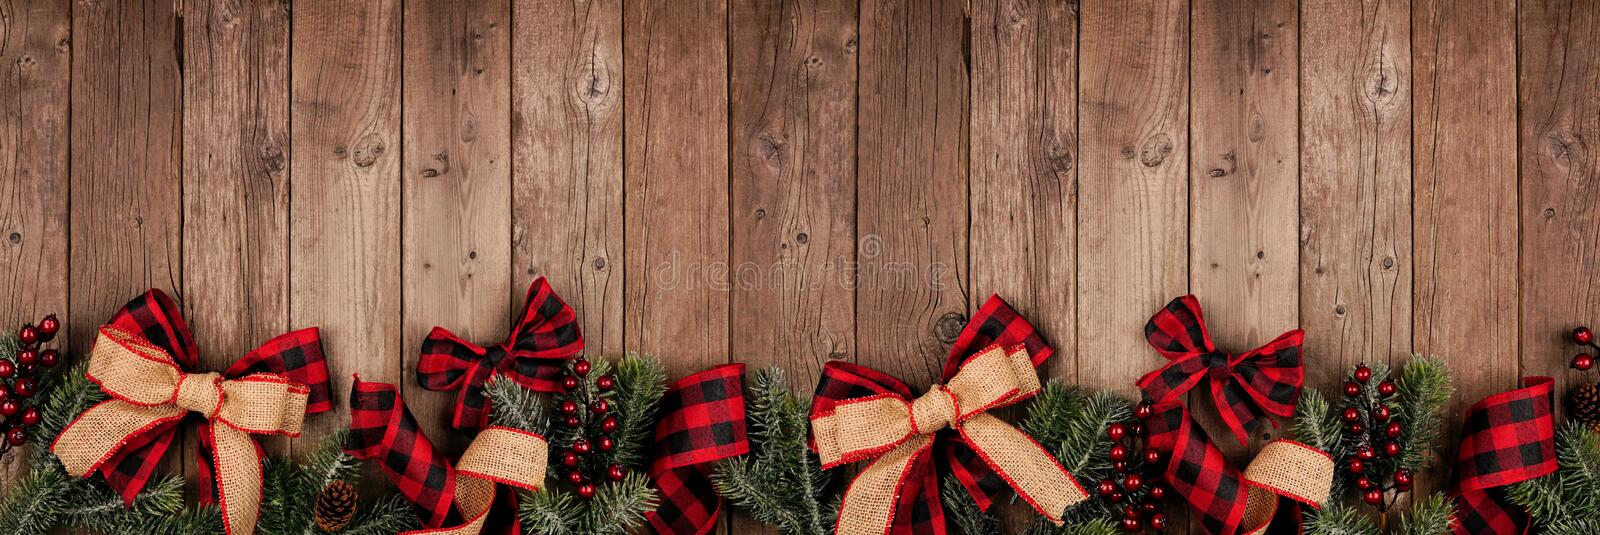 christmas border banner red black checked buffalo plaid ribbon burlap tree branches above view rustic wood 163888985